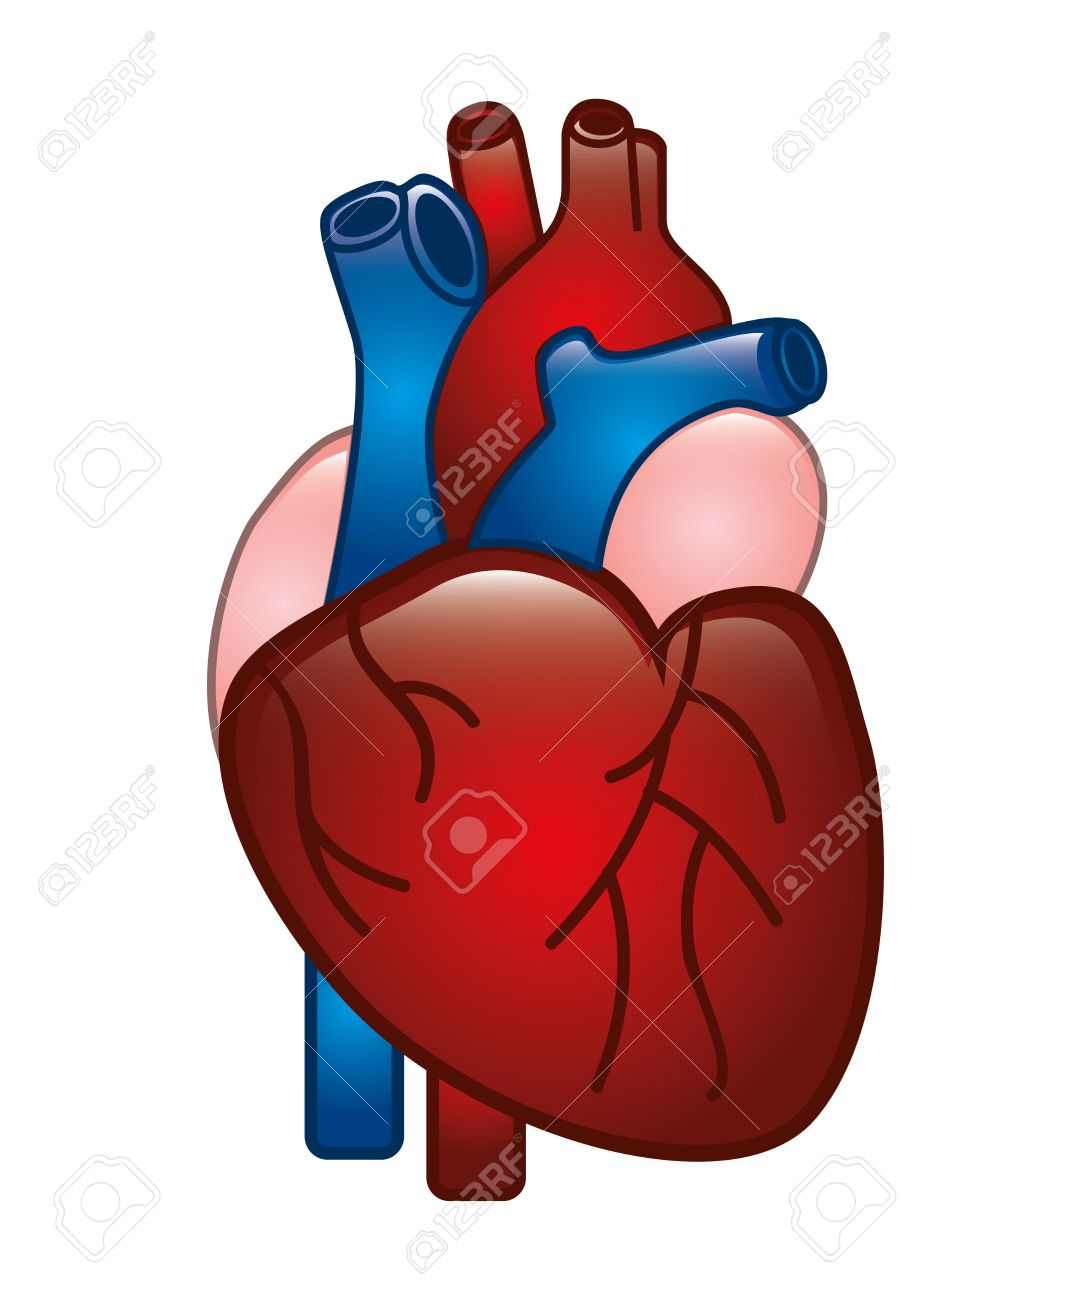 Human Heart Design Over White Background Royalty Free Cliparts